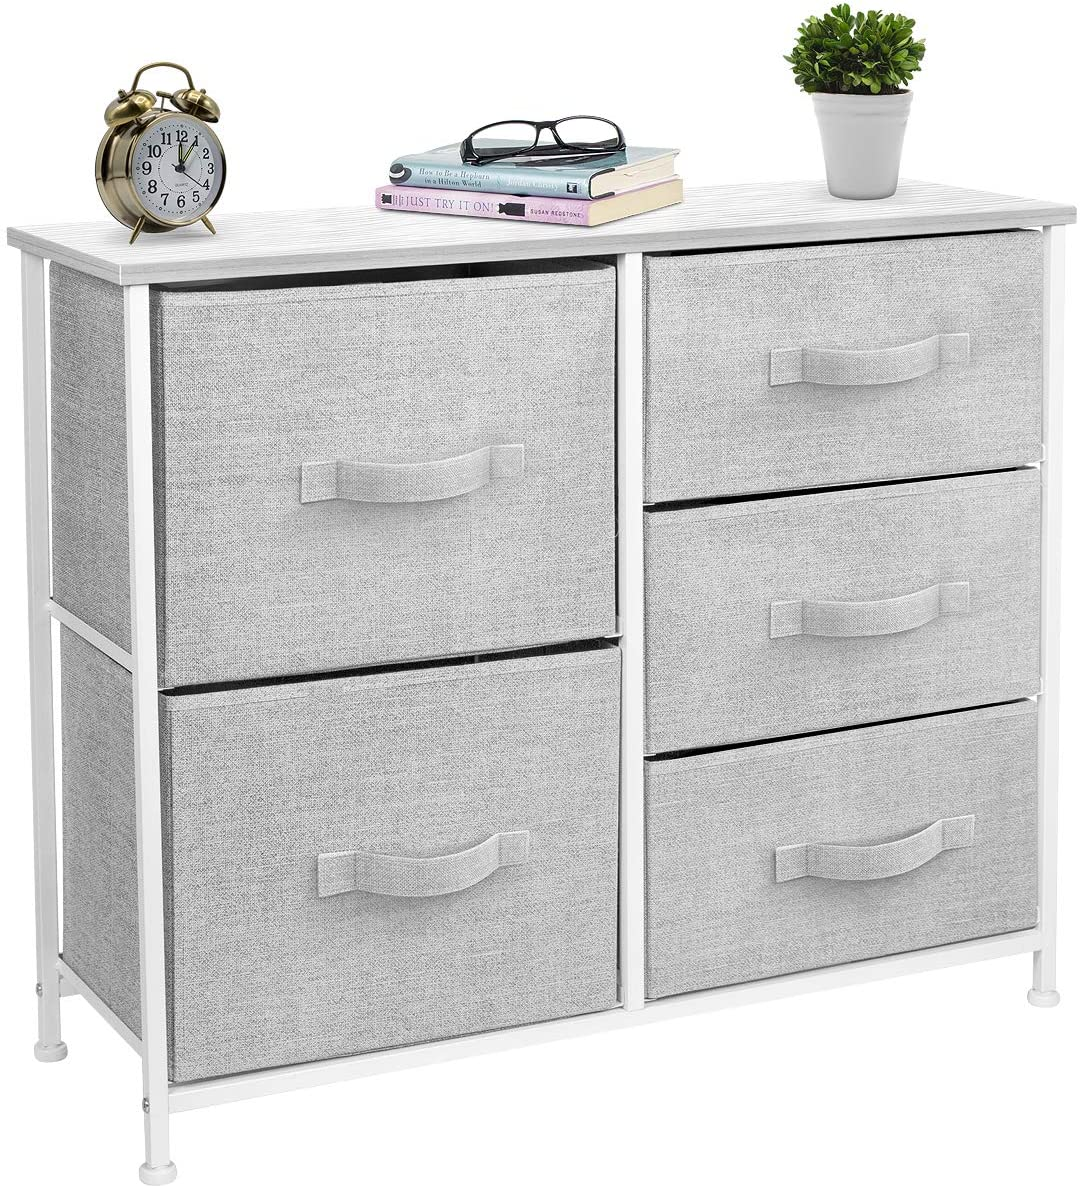 Sorbus Dresser with 3 Drawers - Furniture Storage Tower Unit for